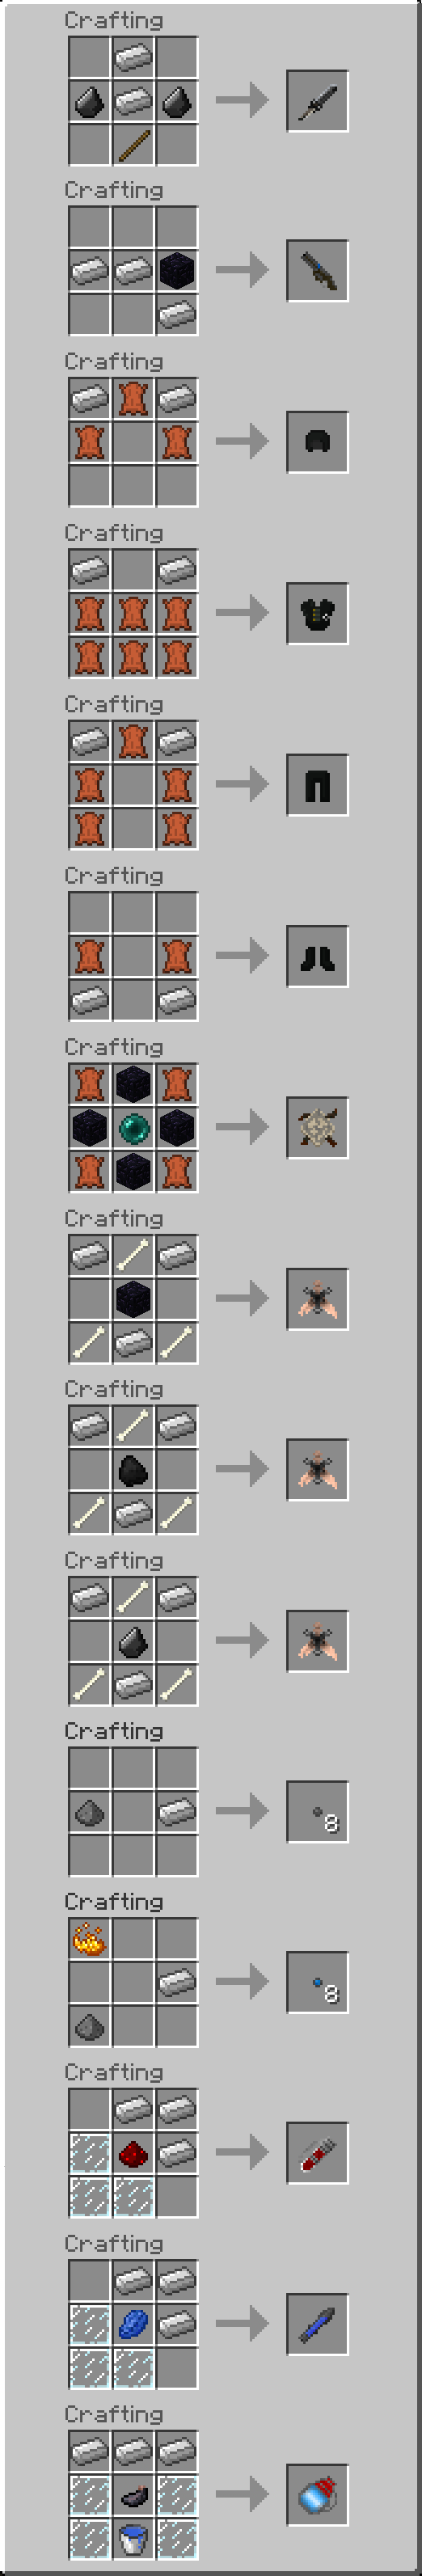 https://img.9minecraft.net/Mod/Dishonored-Mod-2.png